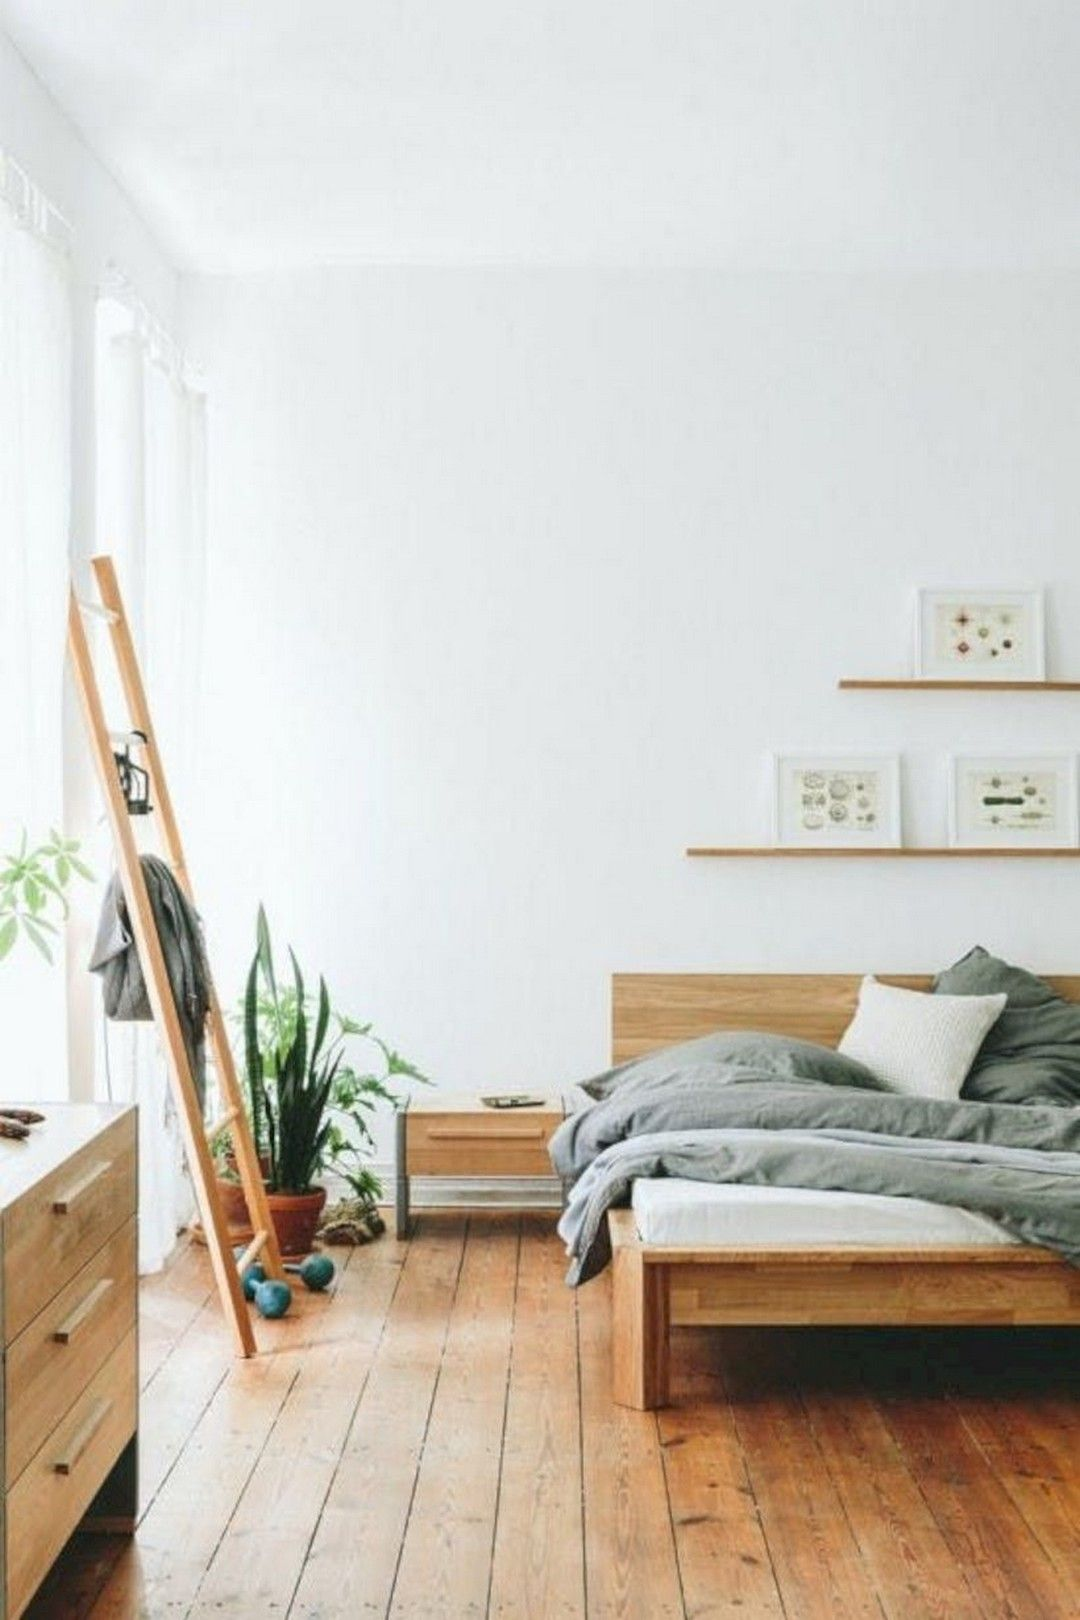 Minimalist And Scandinavian Inspired Bedroom In Natural Colors With A Warm Wooden Floor Minimalist Bedroom Design Minimalist Bedroom Decor Home Decor Bedroom